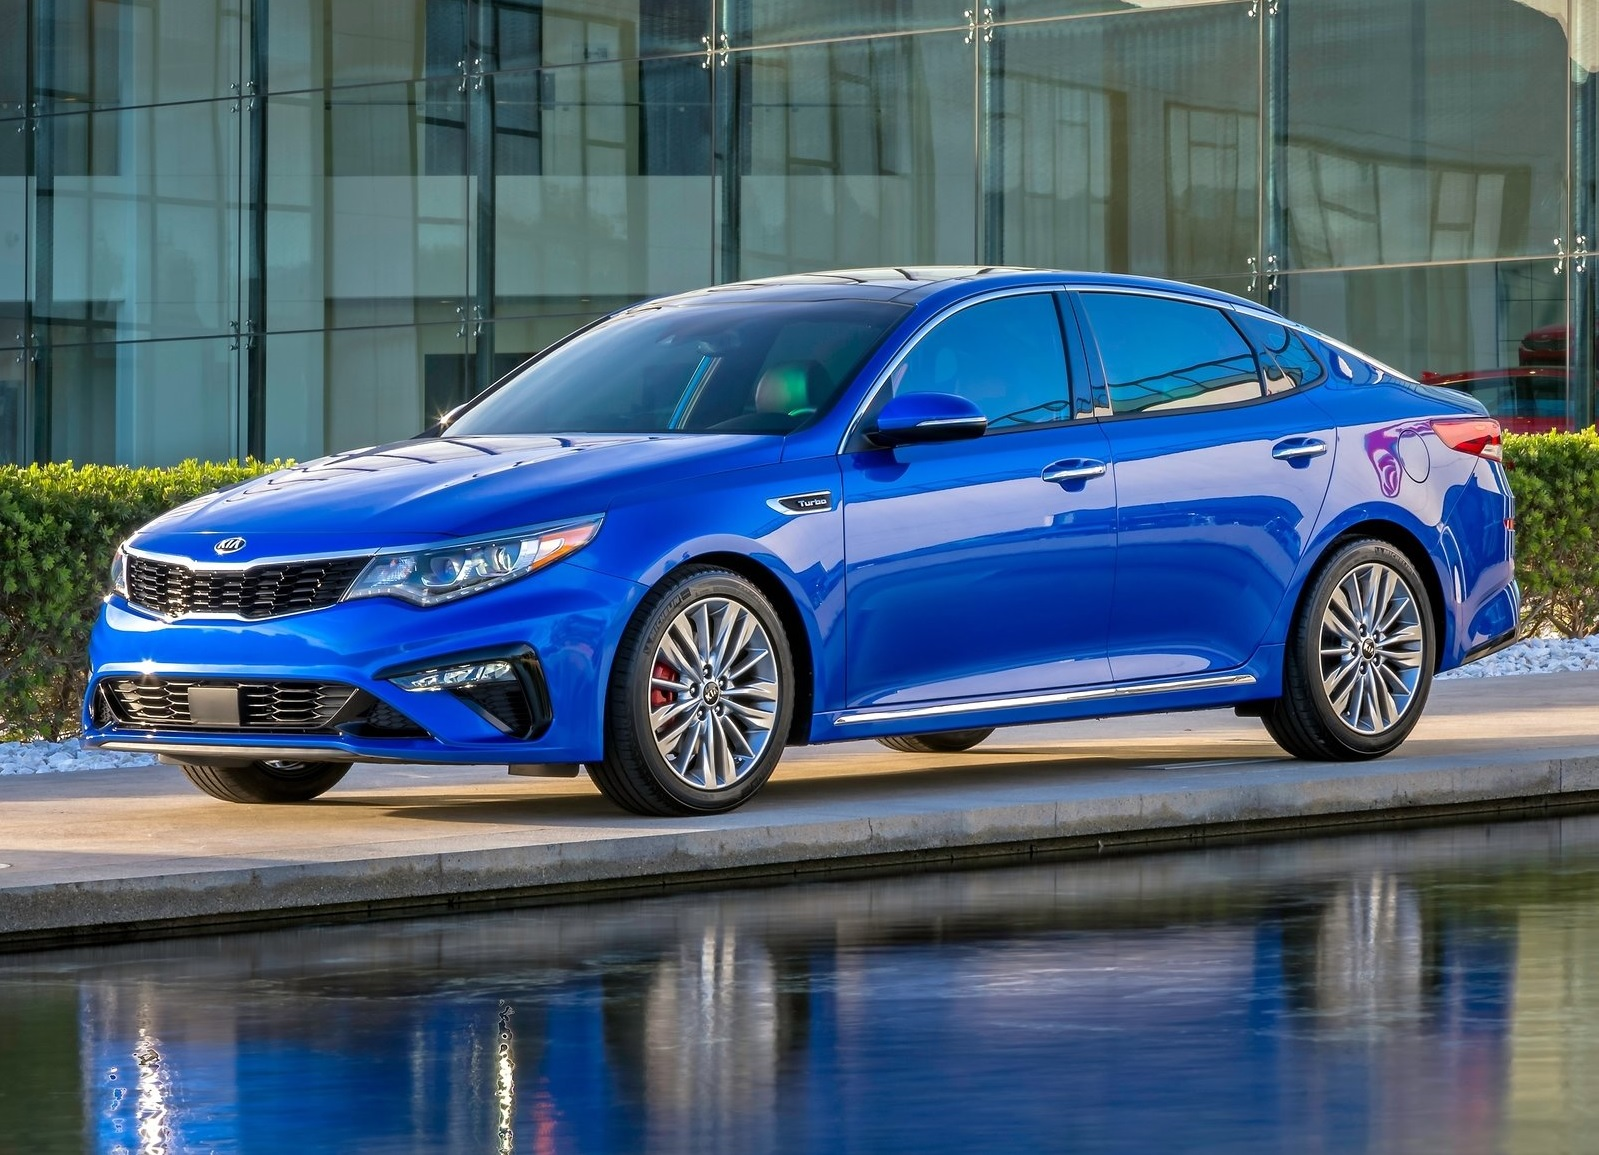 Kia Optima What Year Is The Best To Buy